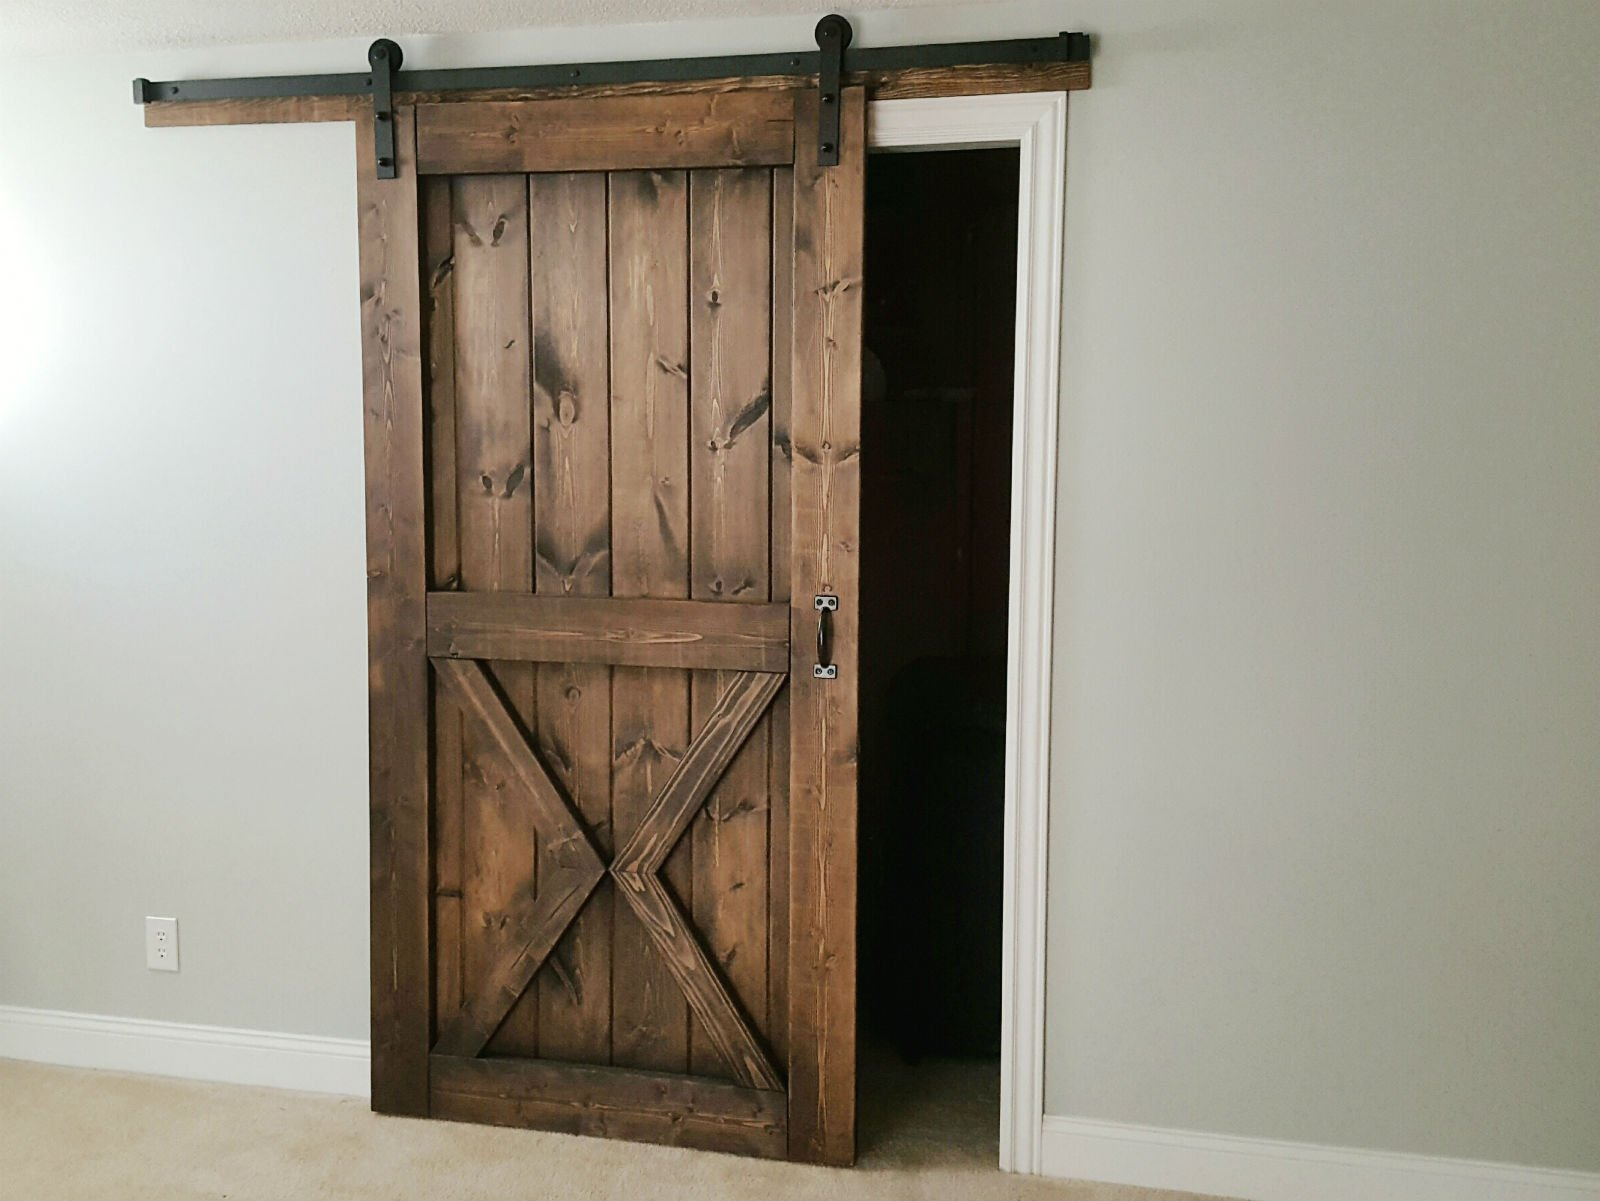 Barn door sliding 2 panel x style walston door company for Door companies